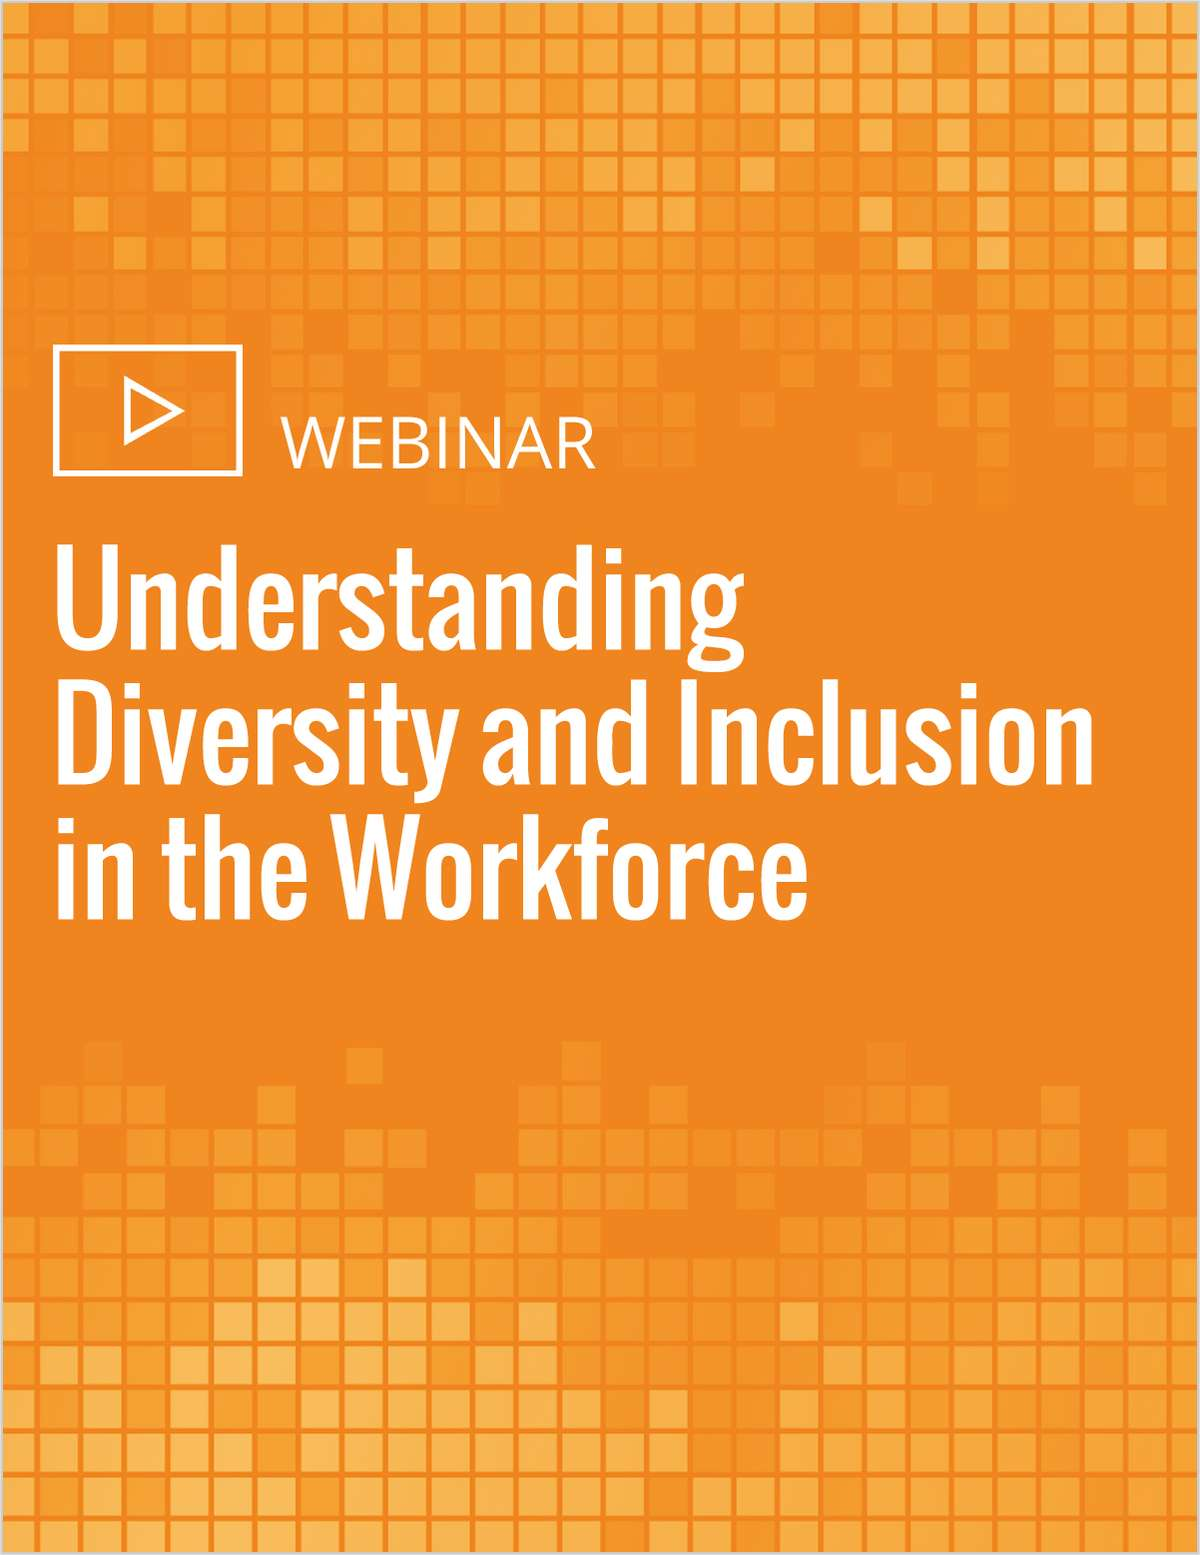 Understanding Diversity and Inclusion in the Workforce